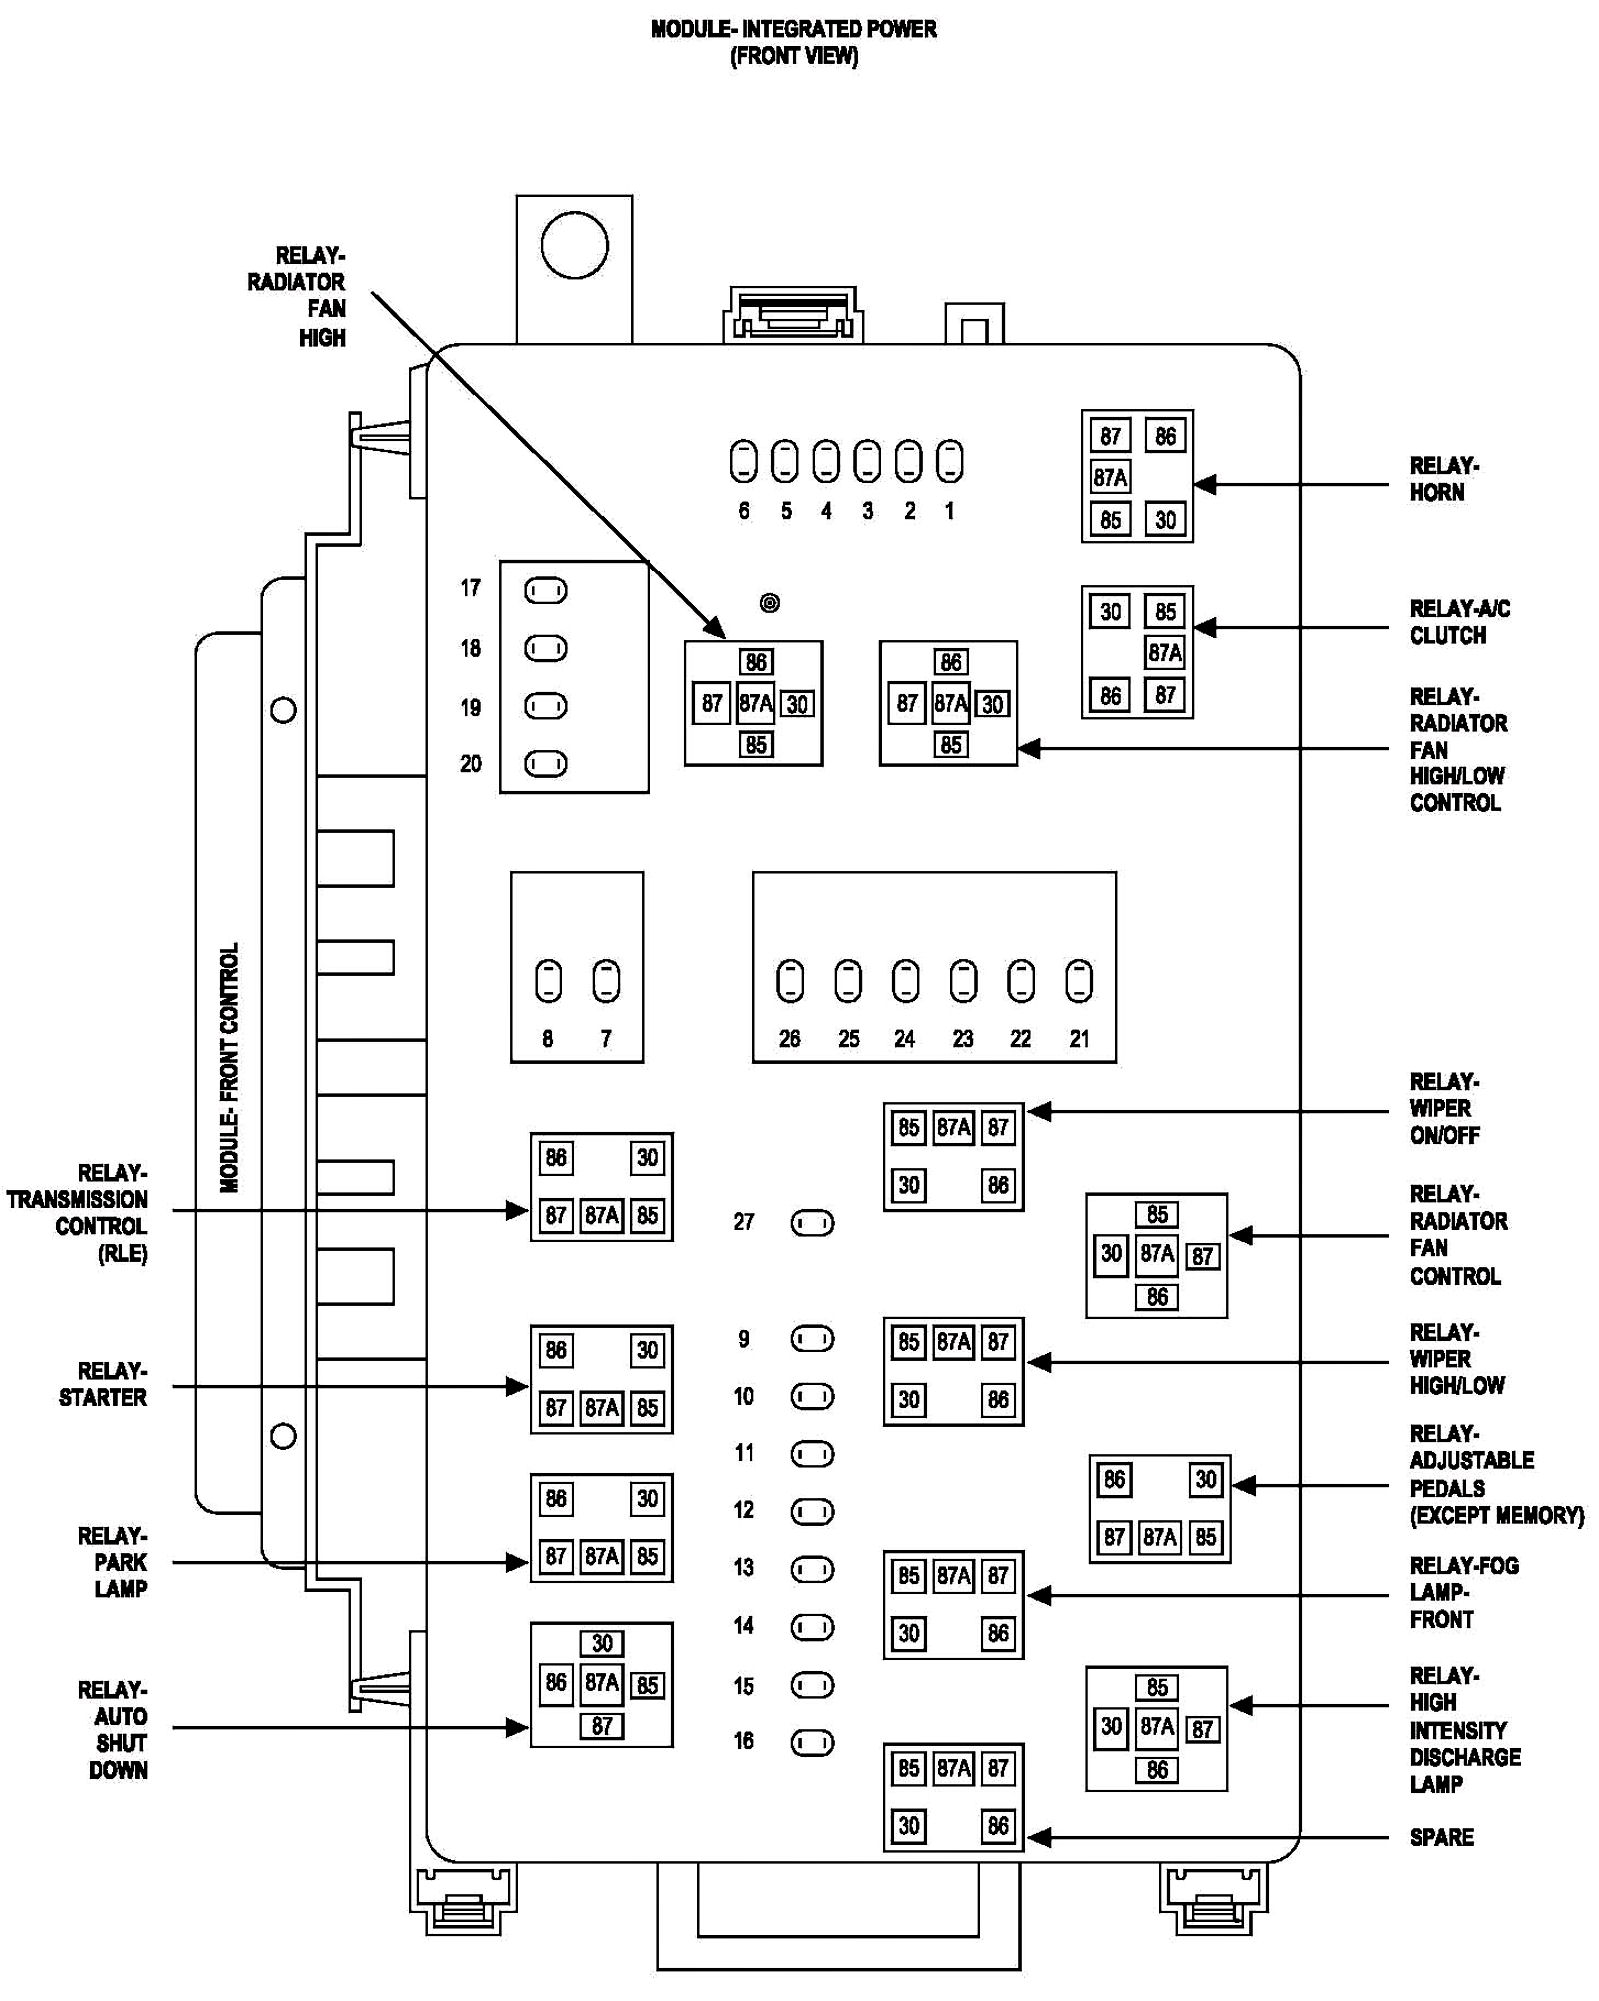 2006 Dodge Charger Rt Wiring Diagram